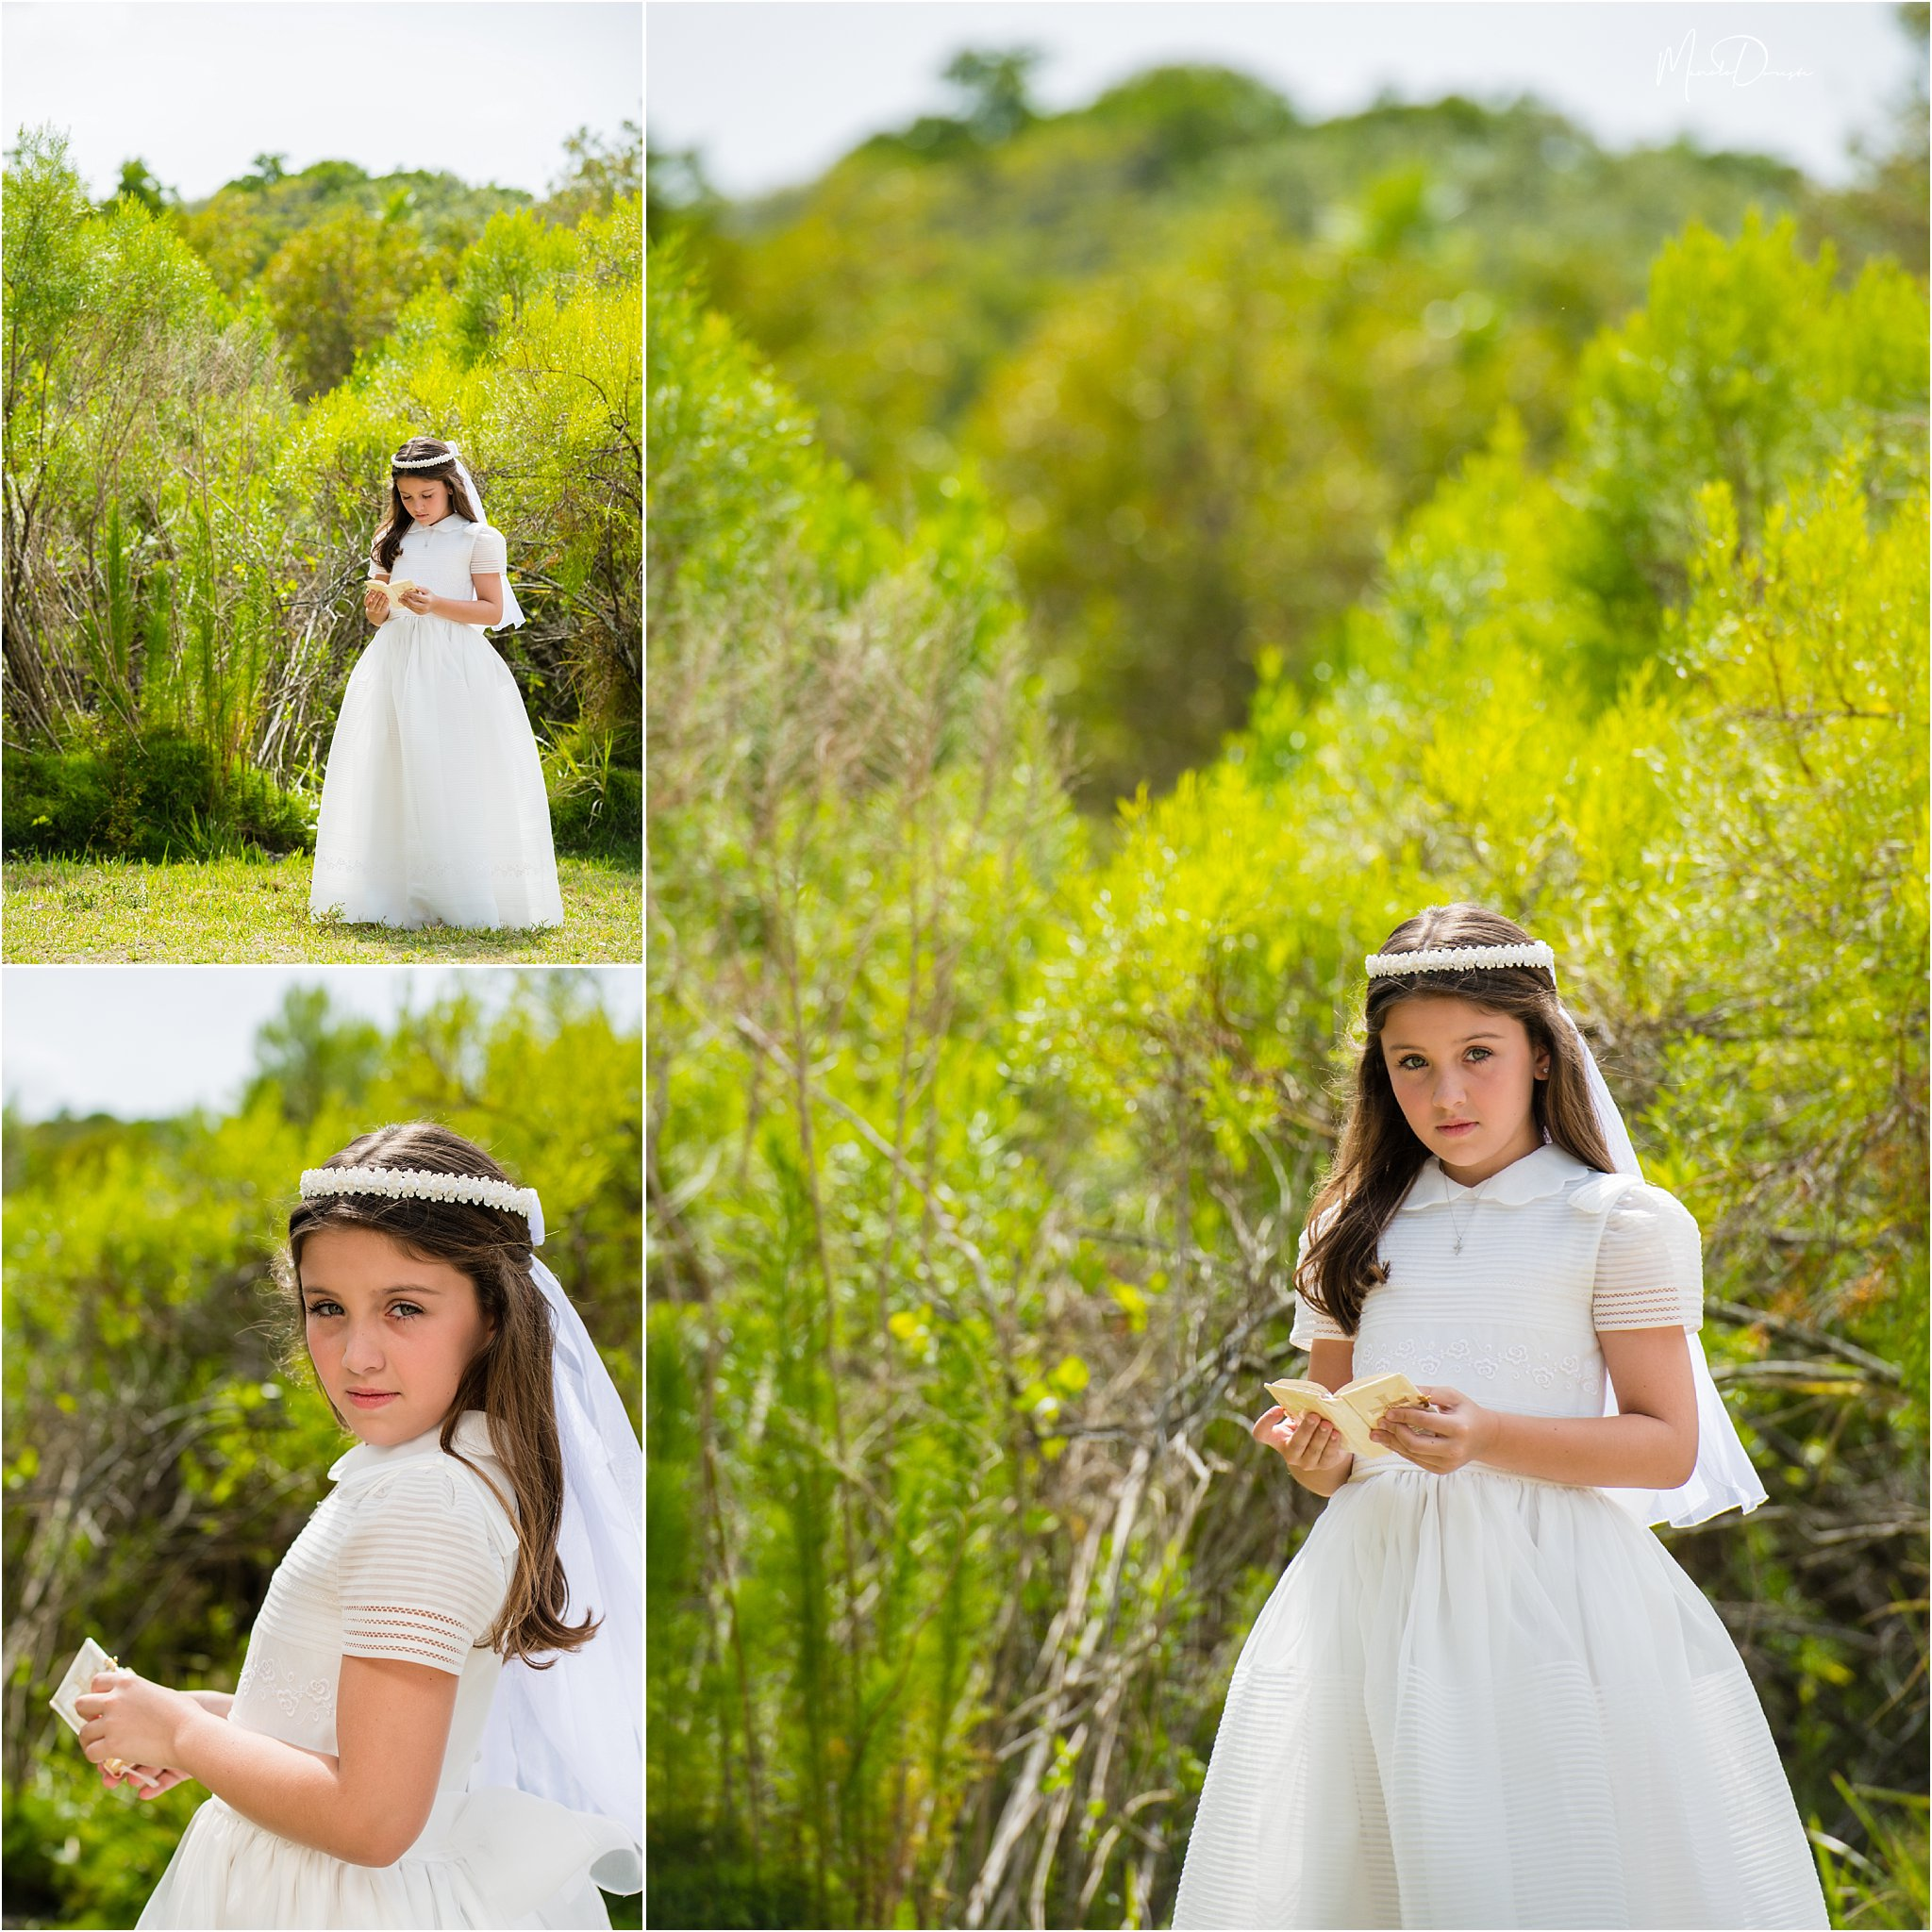 0614_ManoloDoreste_InFocusStudios_Wedding_Family_Photography_Miami_MiamiPhotographer.jpg